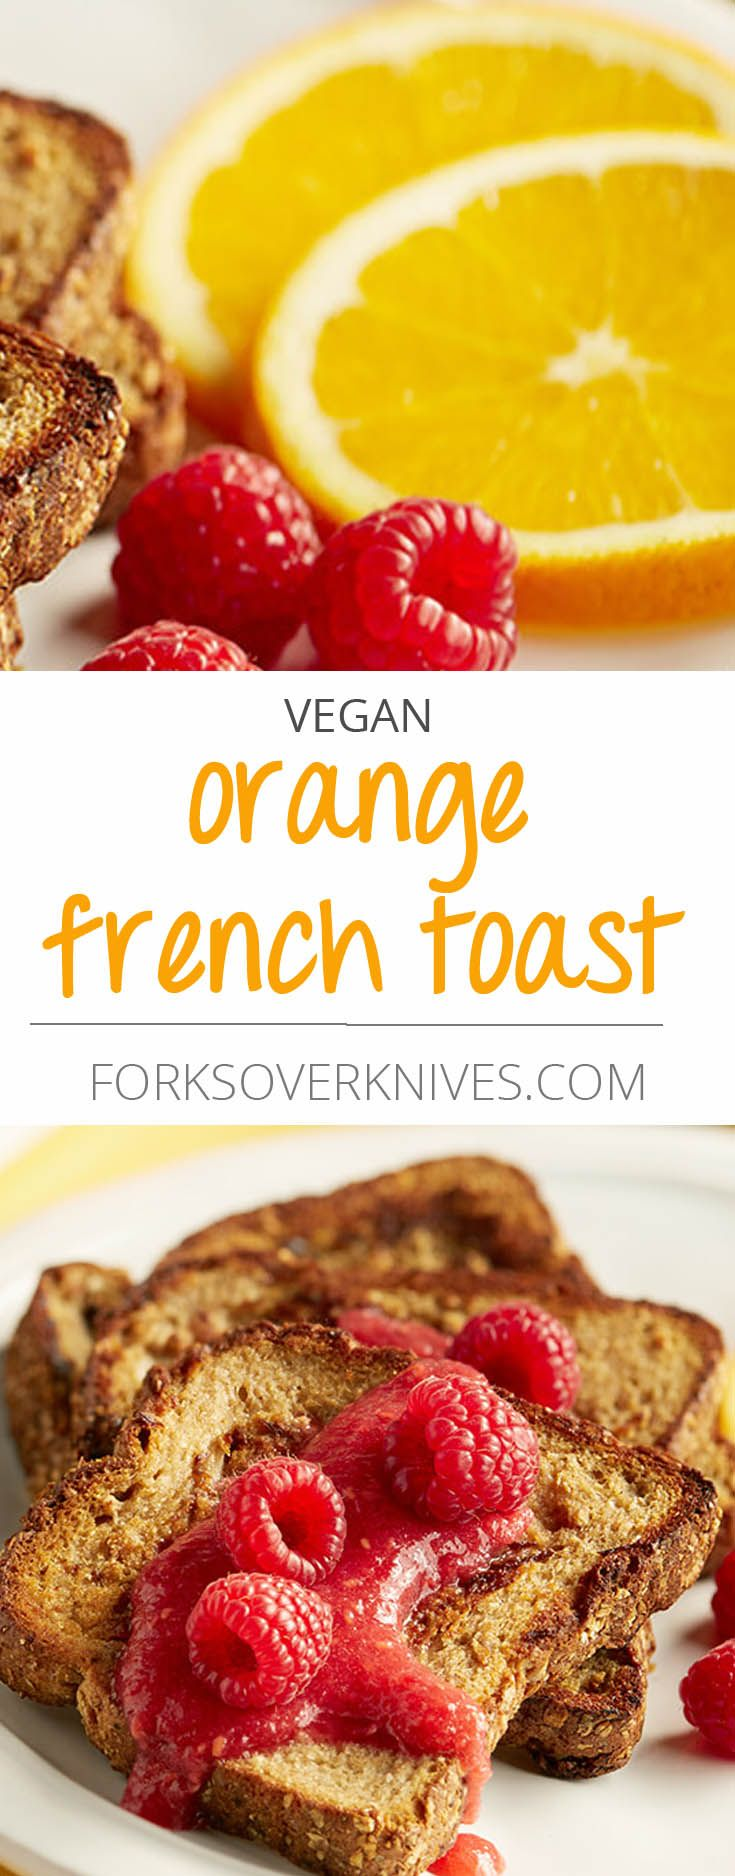 Aquafaba Helps Make This Vegan French Toast Soft Thick And Eggy Use Your Favorite Bread Or Berries T Vegan Brunch Yummy Healthy Breakfast Whole Food Recipes